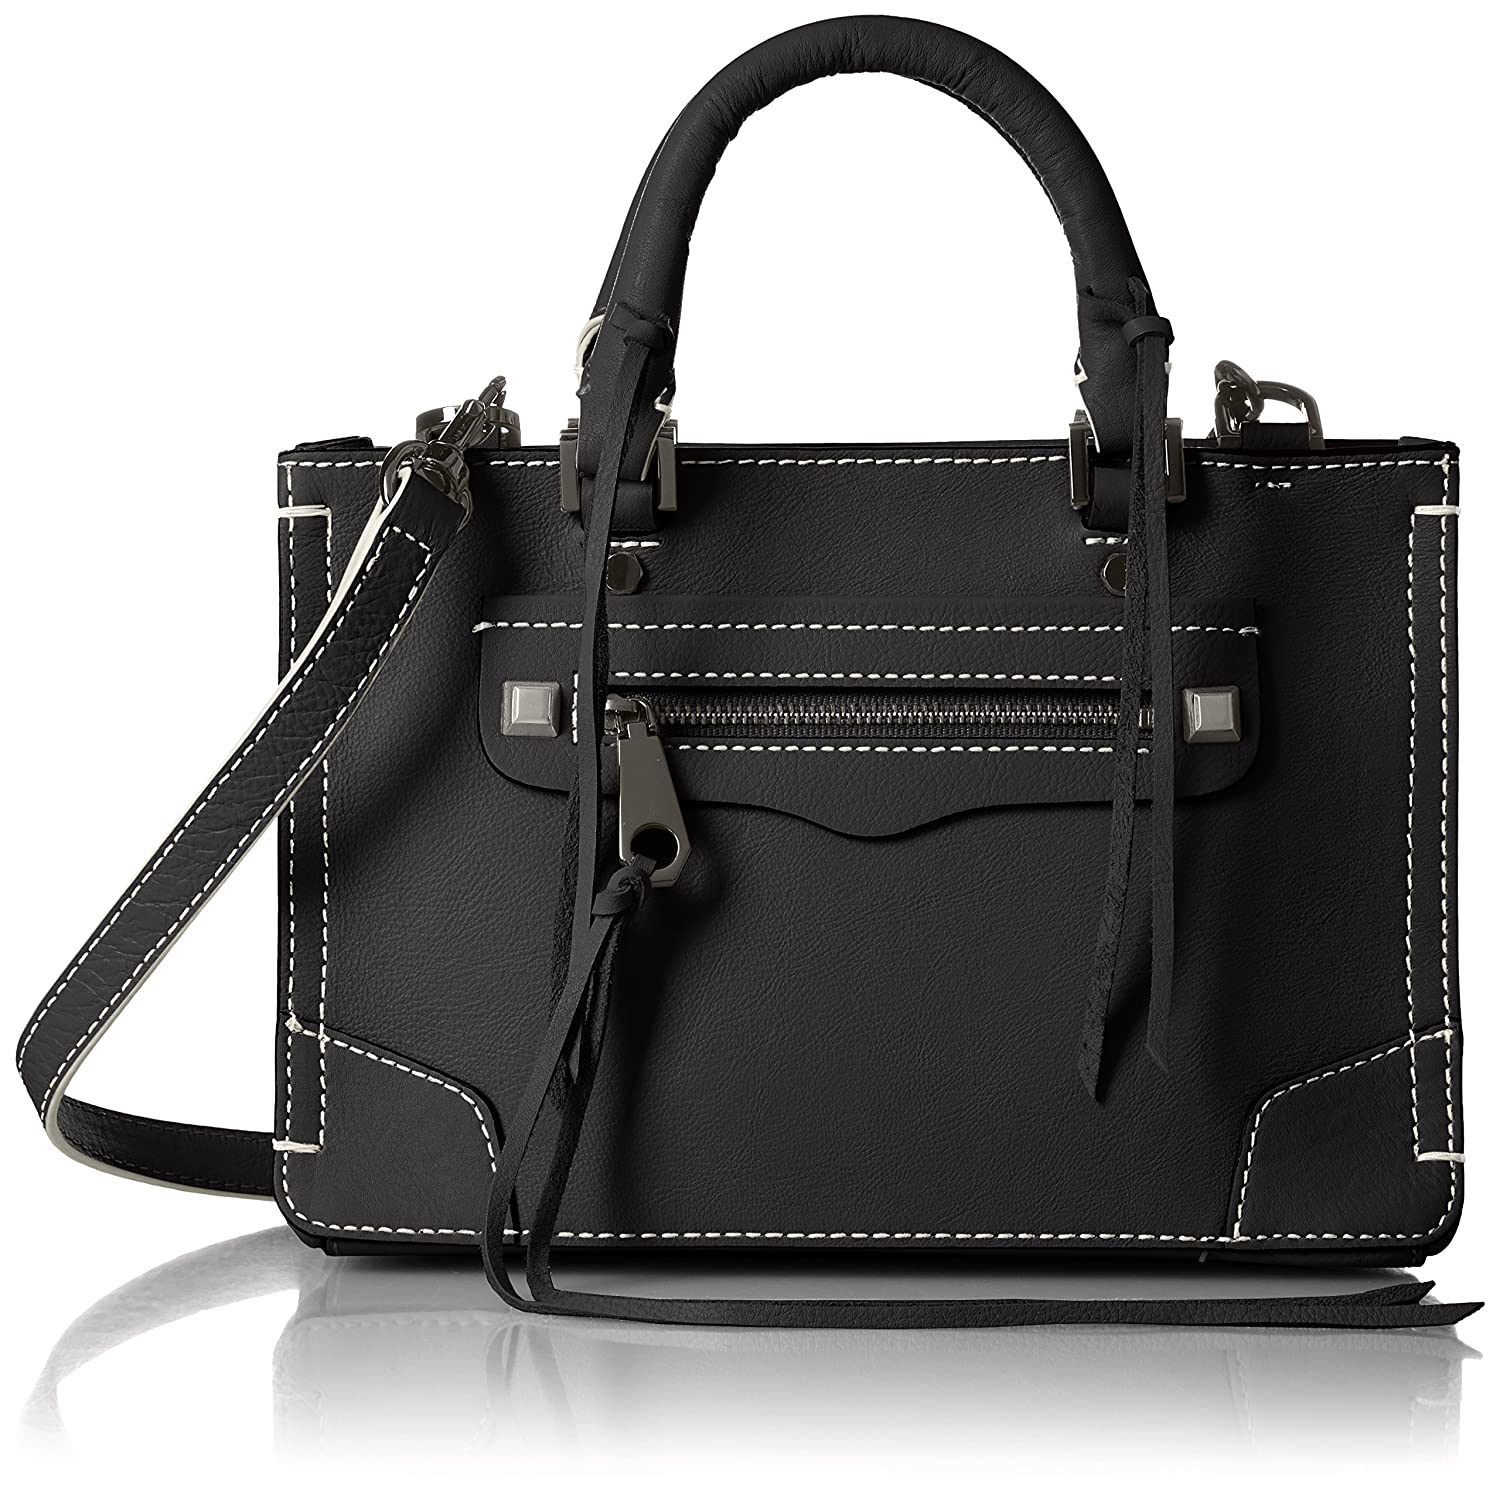 [レベッカミンコフ] 正規品 MICRO REGAN SATCHEL427-7280726-017 B06XX9817GBLACK W/ WHITE STITCH